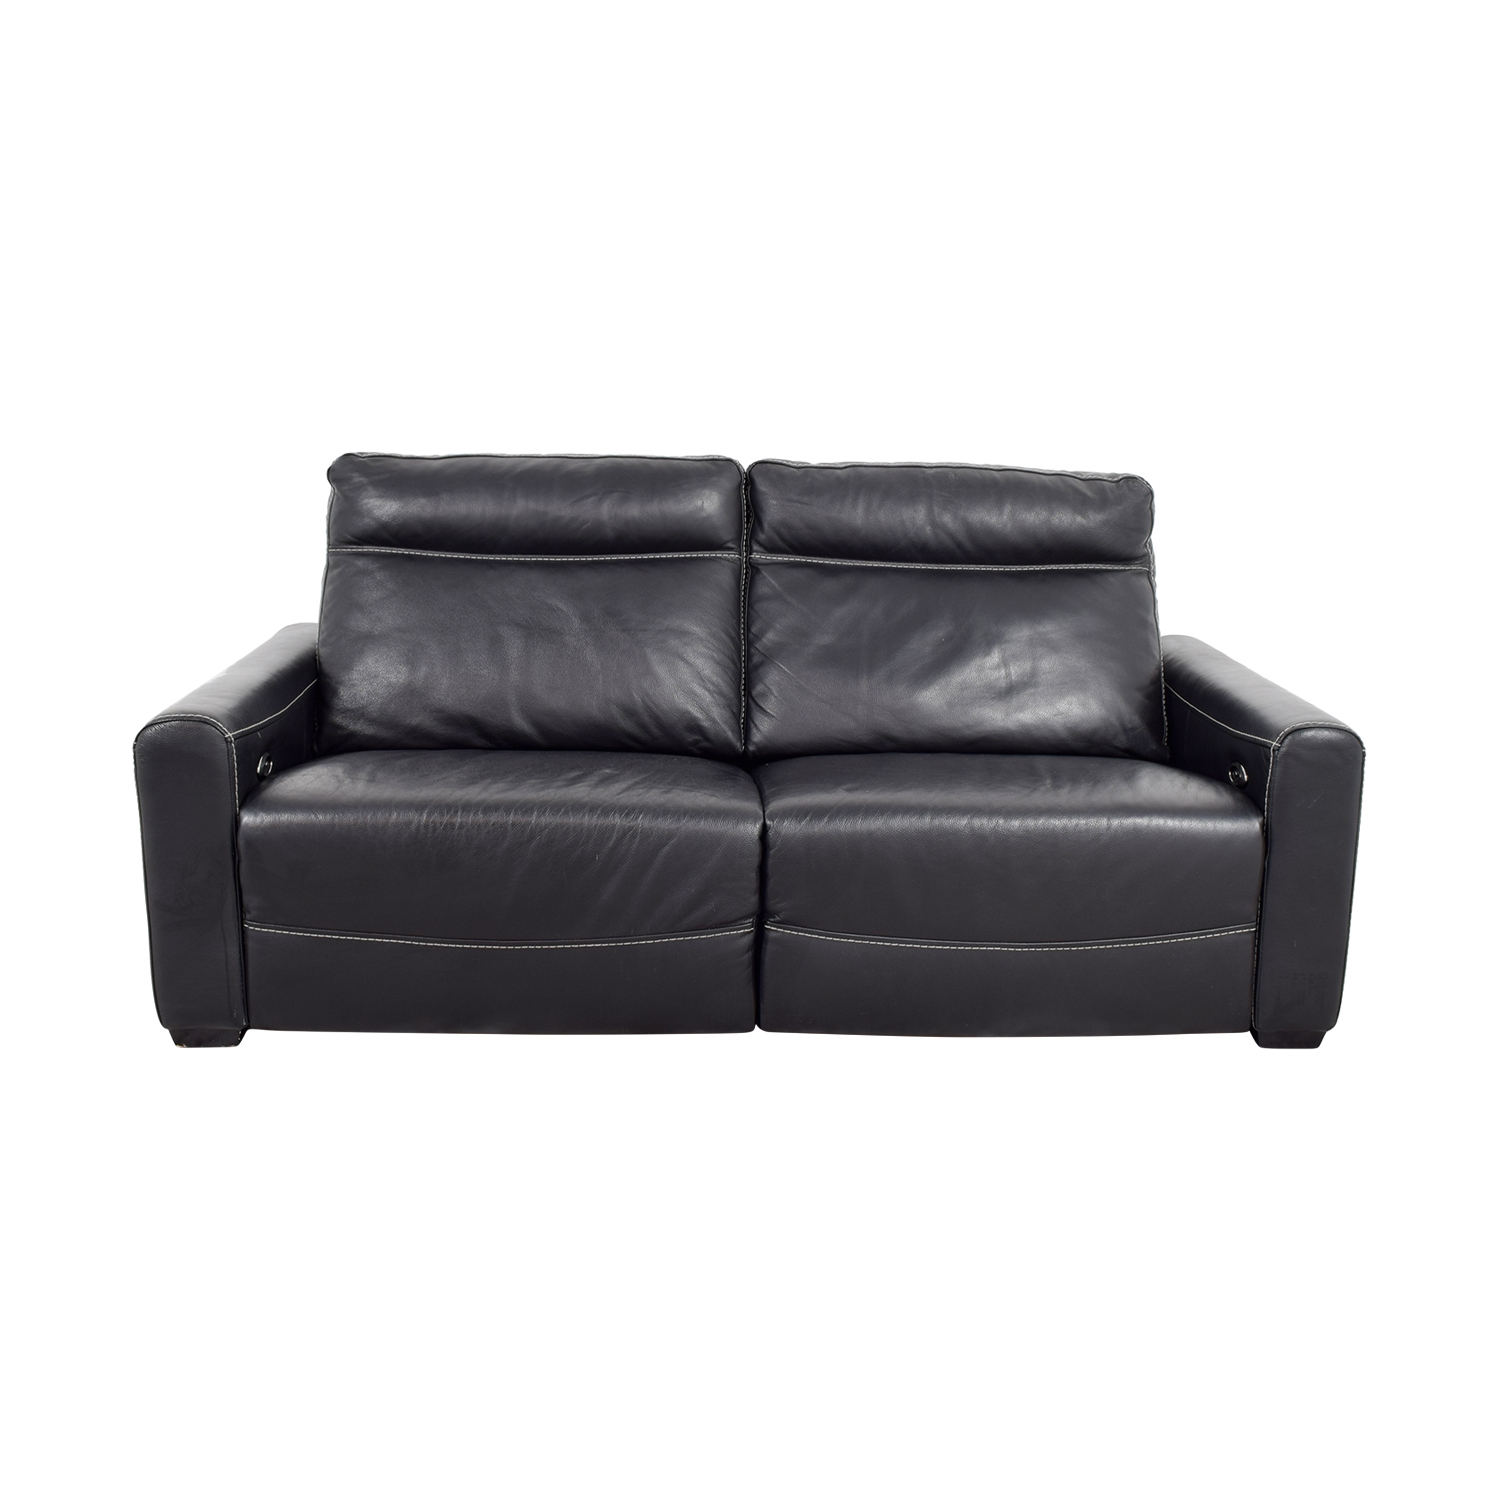 buy Macy's Black Leather Reclining Sofa Macy's Loveseats